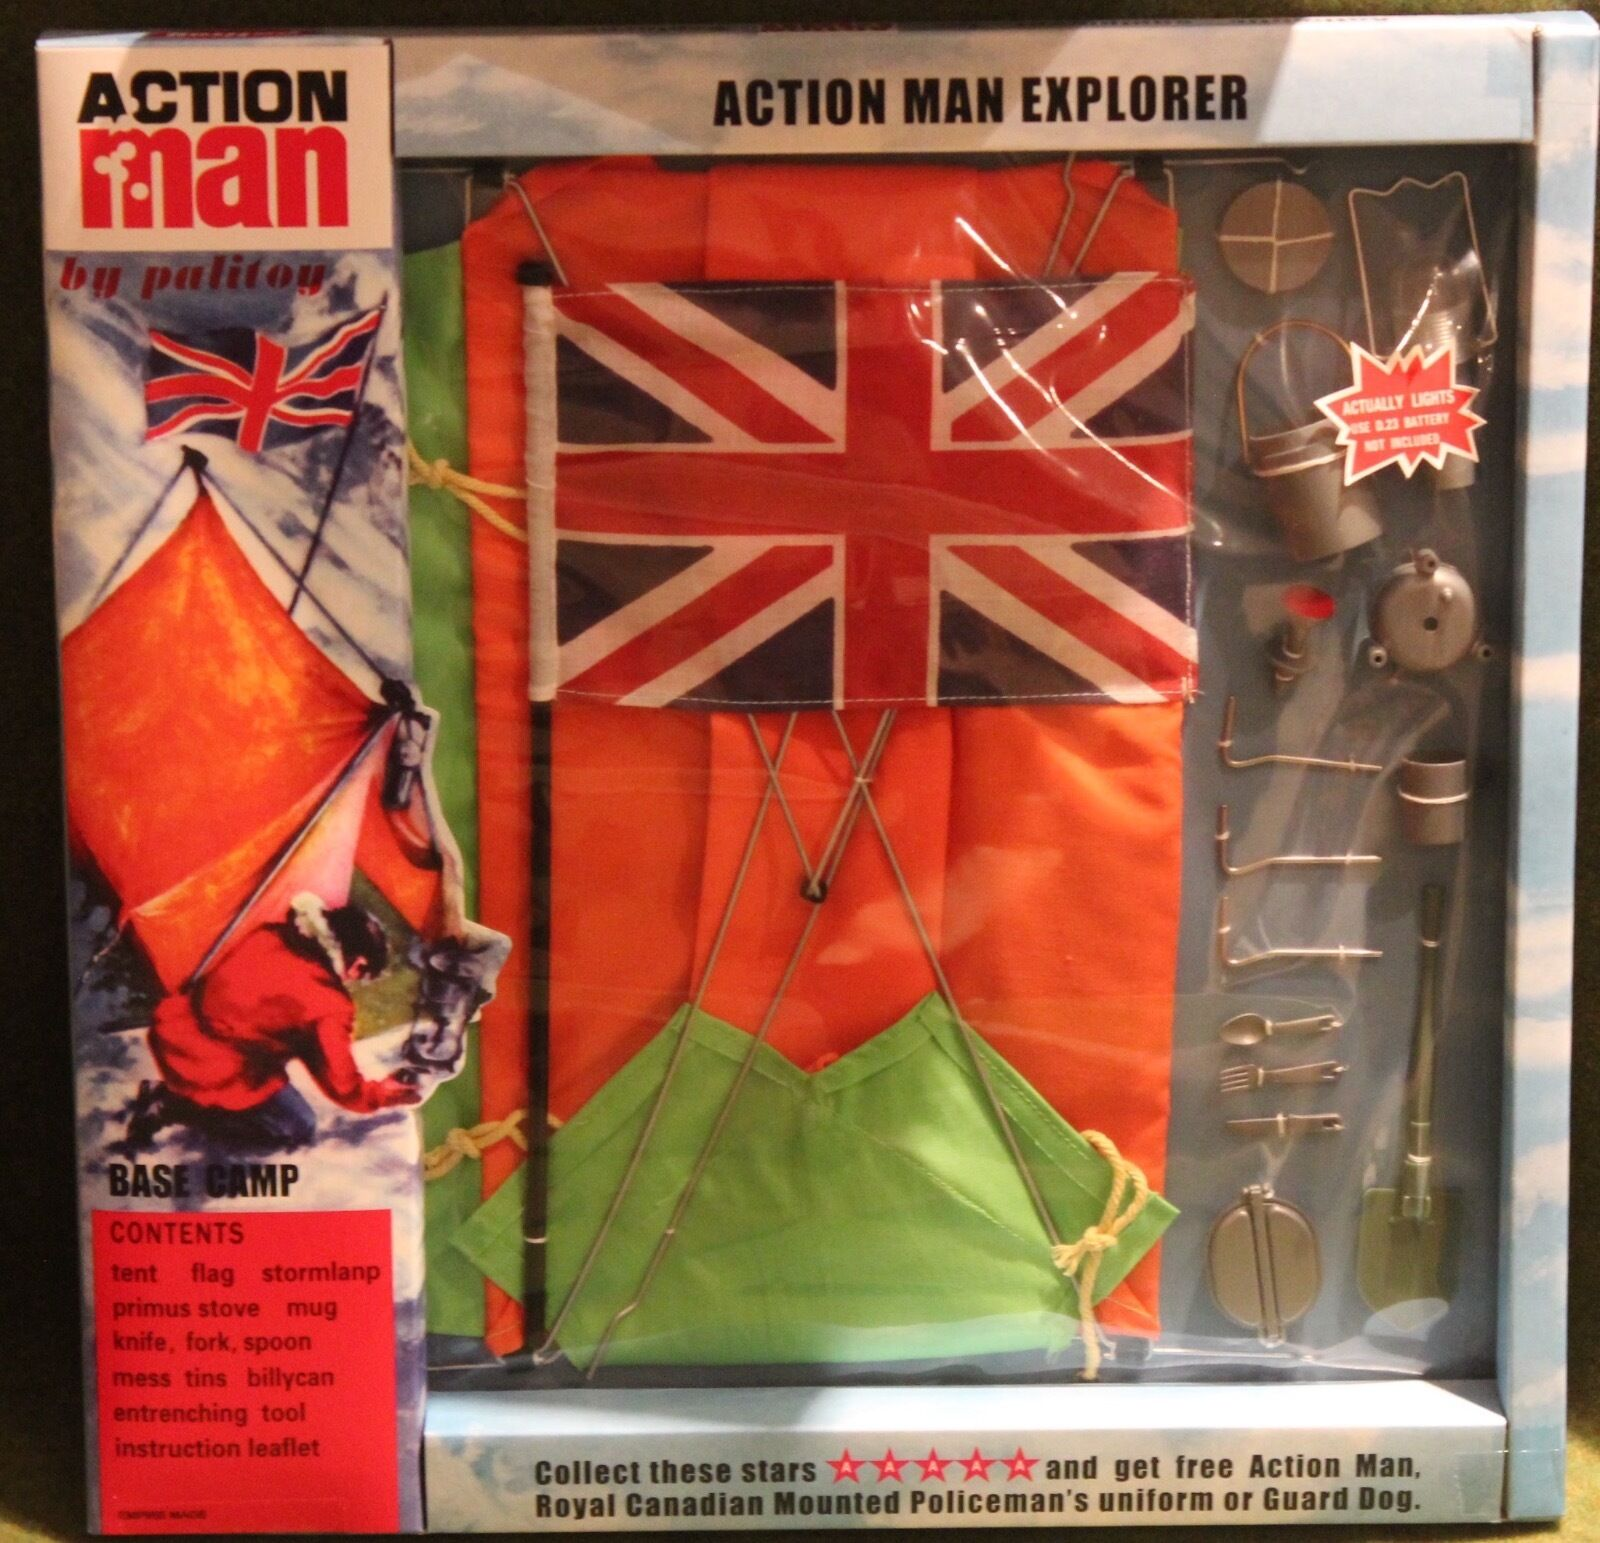 Vintage action man 40th anniversary explorer base camp carded boxed